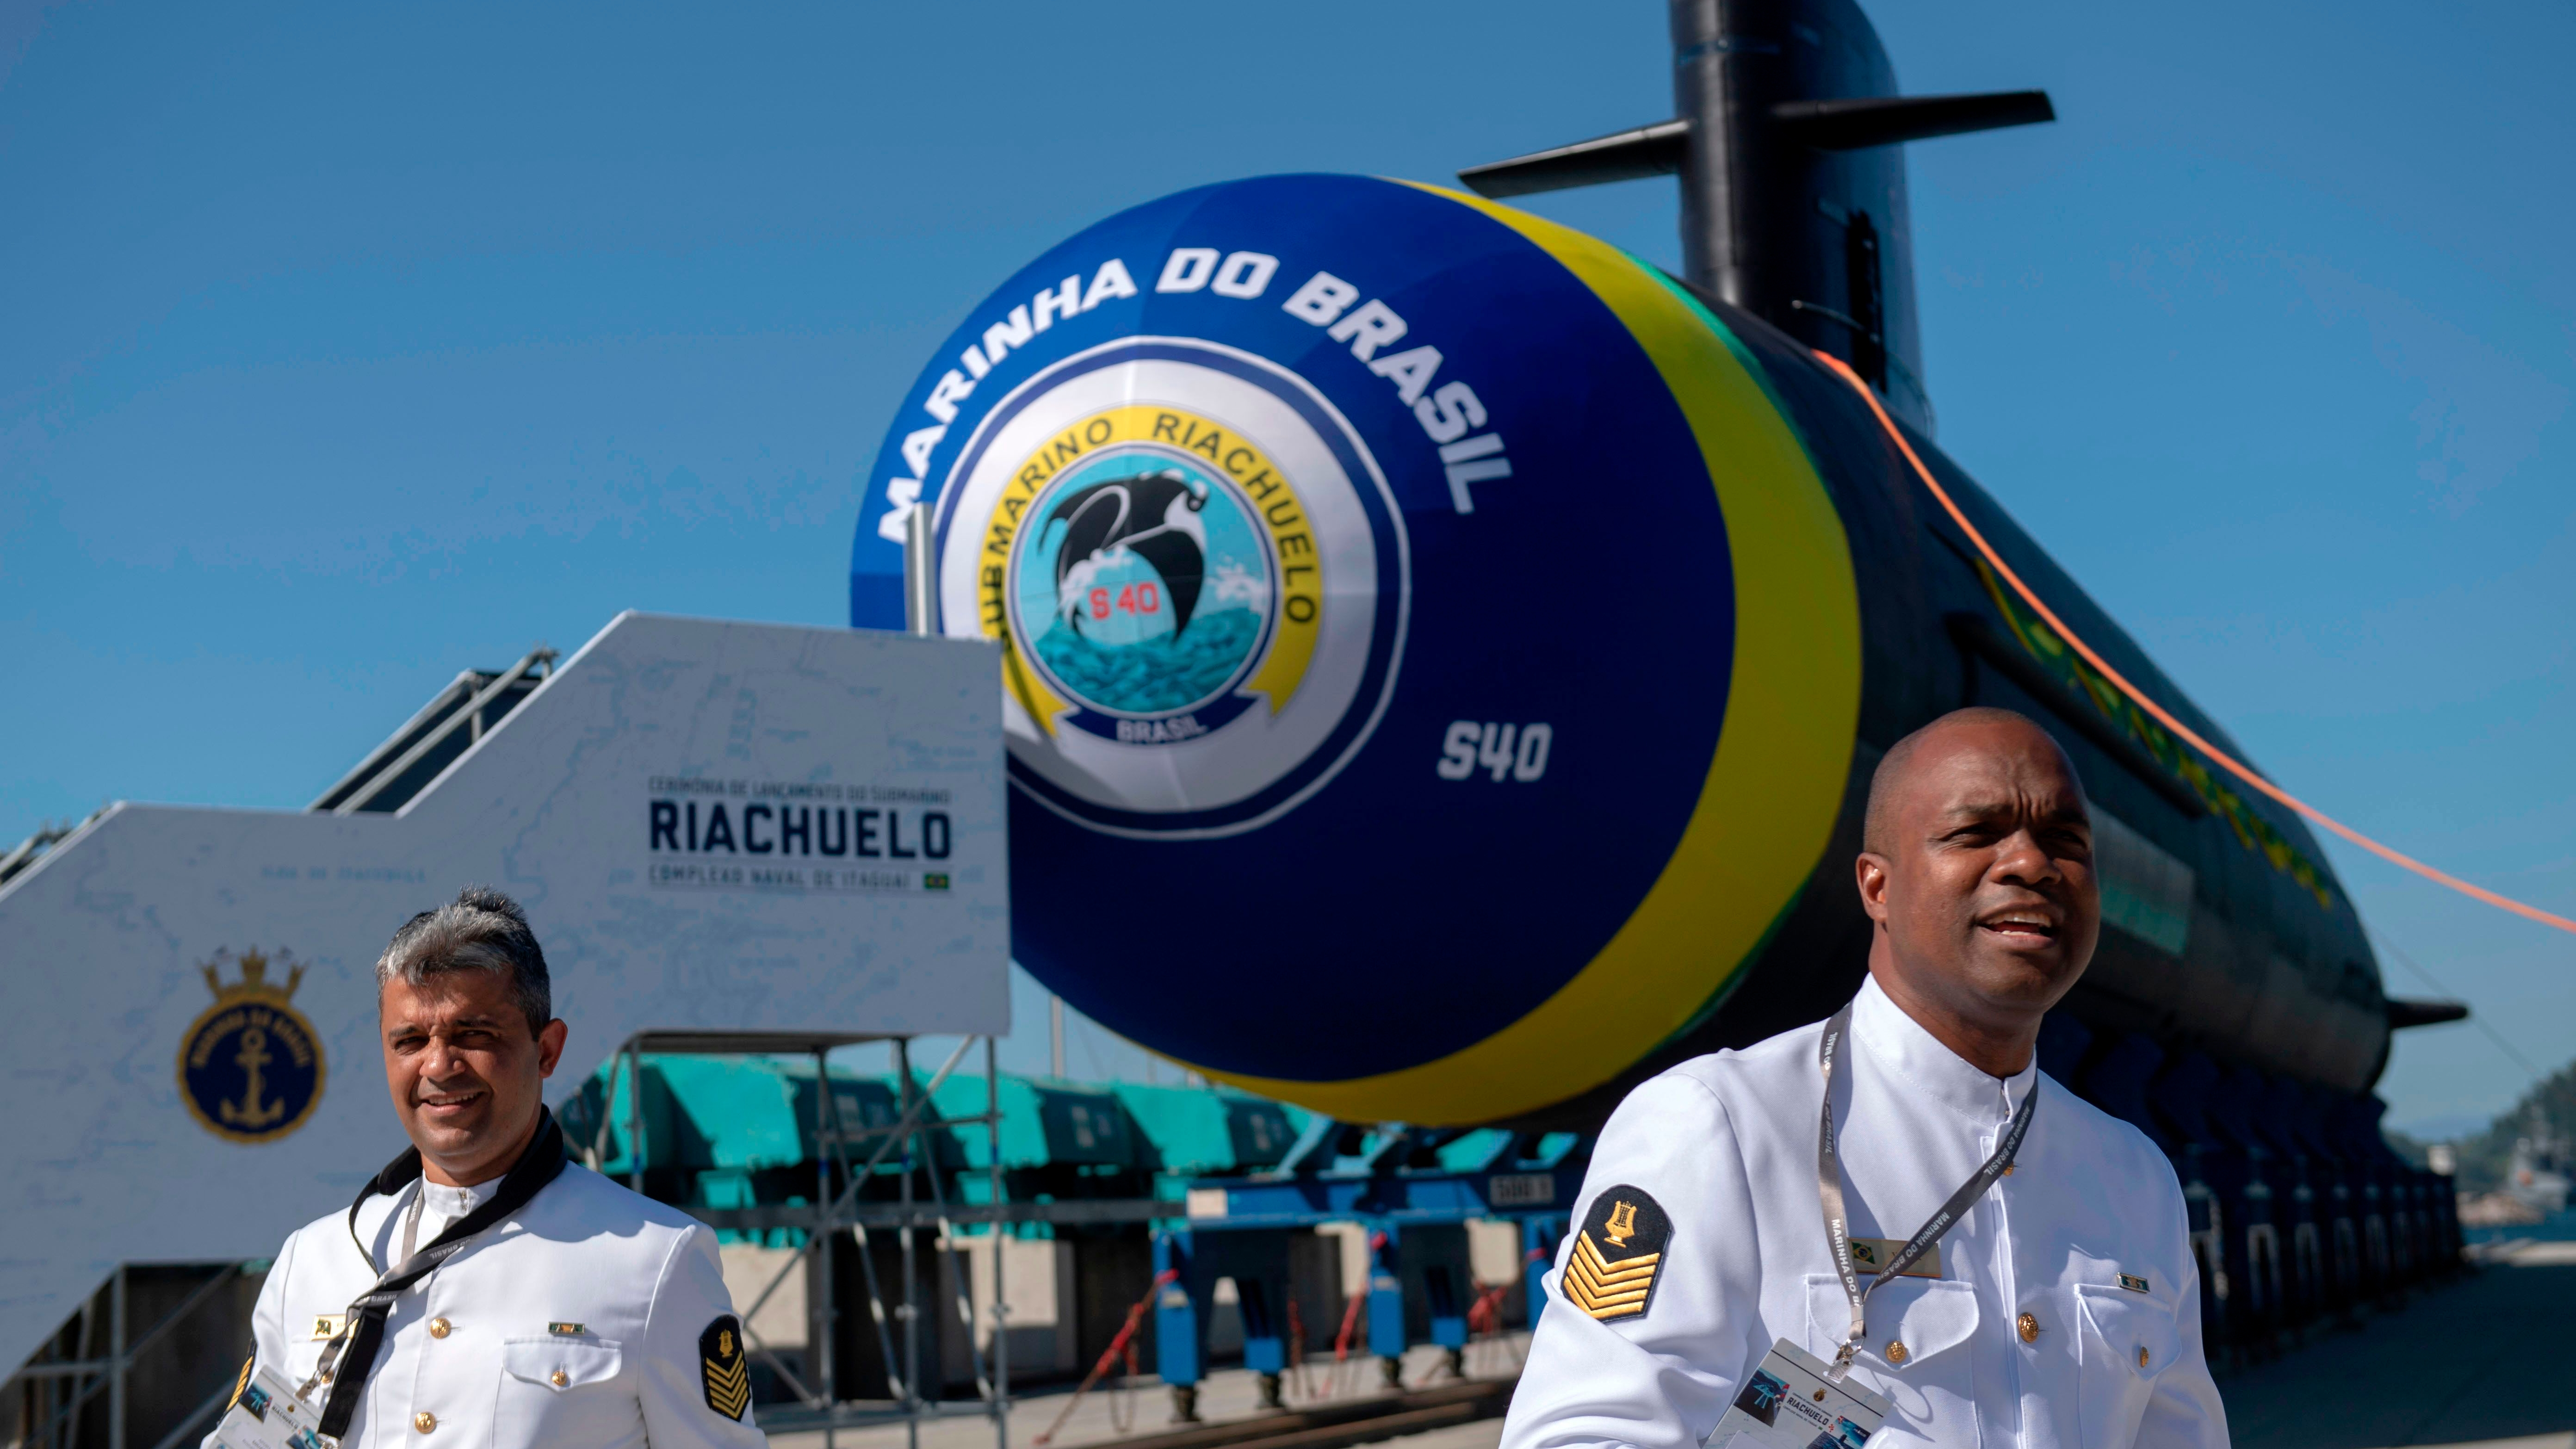 Brazilian Navy officers walk by the Riachuelo submarine during its launch ceremony at a navy base in Itaguai city, Rio de Janeiro state, Brazil, on Dec. 14, 2018. (Photo by Mauro Pimentel/AFP/Getty Images)